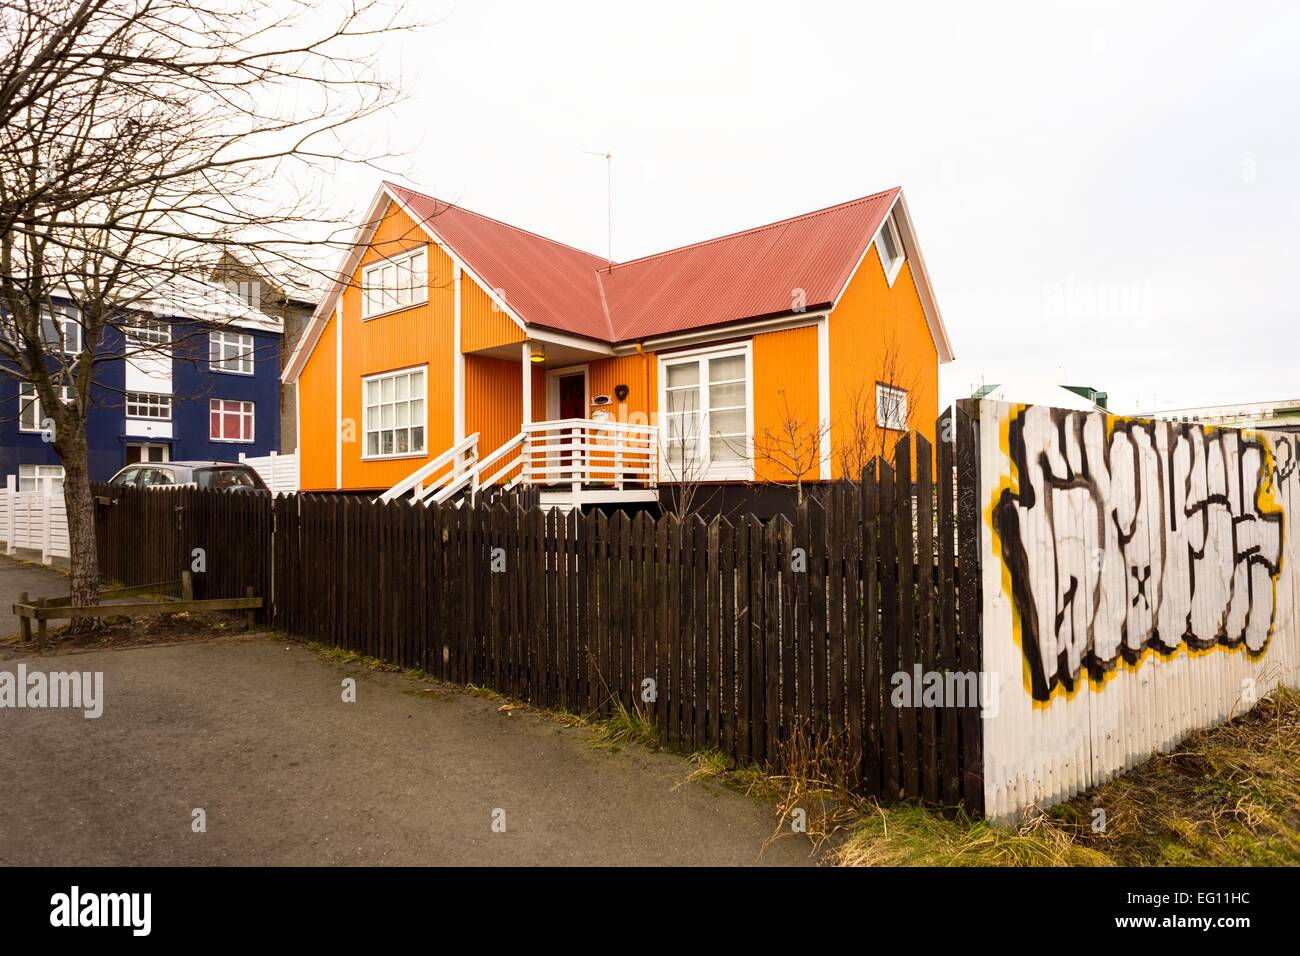 An Orange And Red Painted House Surrounded By A Fence With Graffiti Around  In Reykjavik, Iceland, 2014.